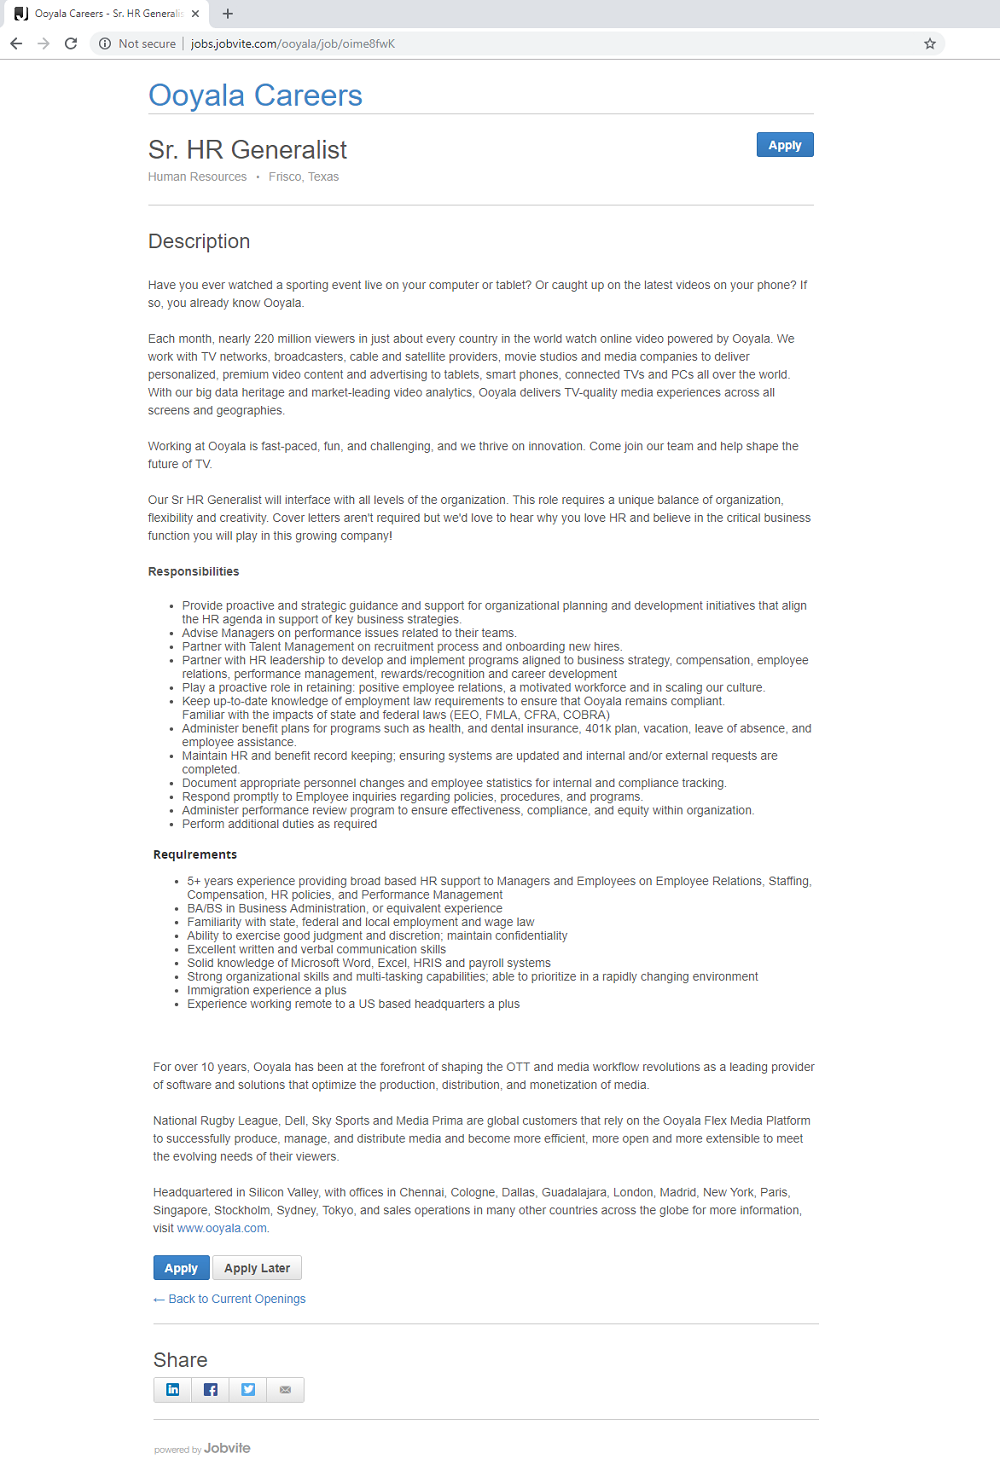 out-of-the-box Jobvite ATS job page